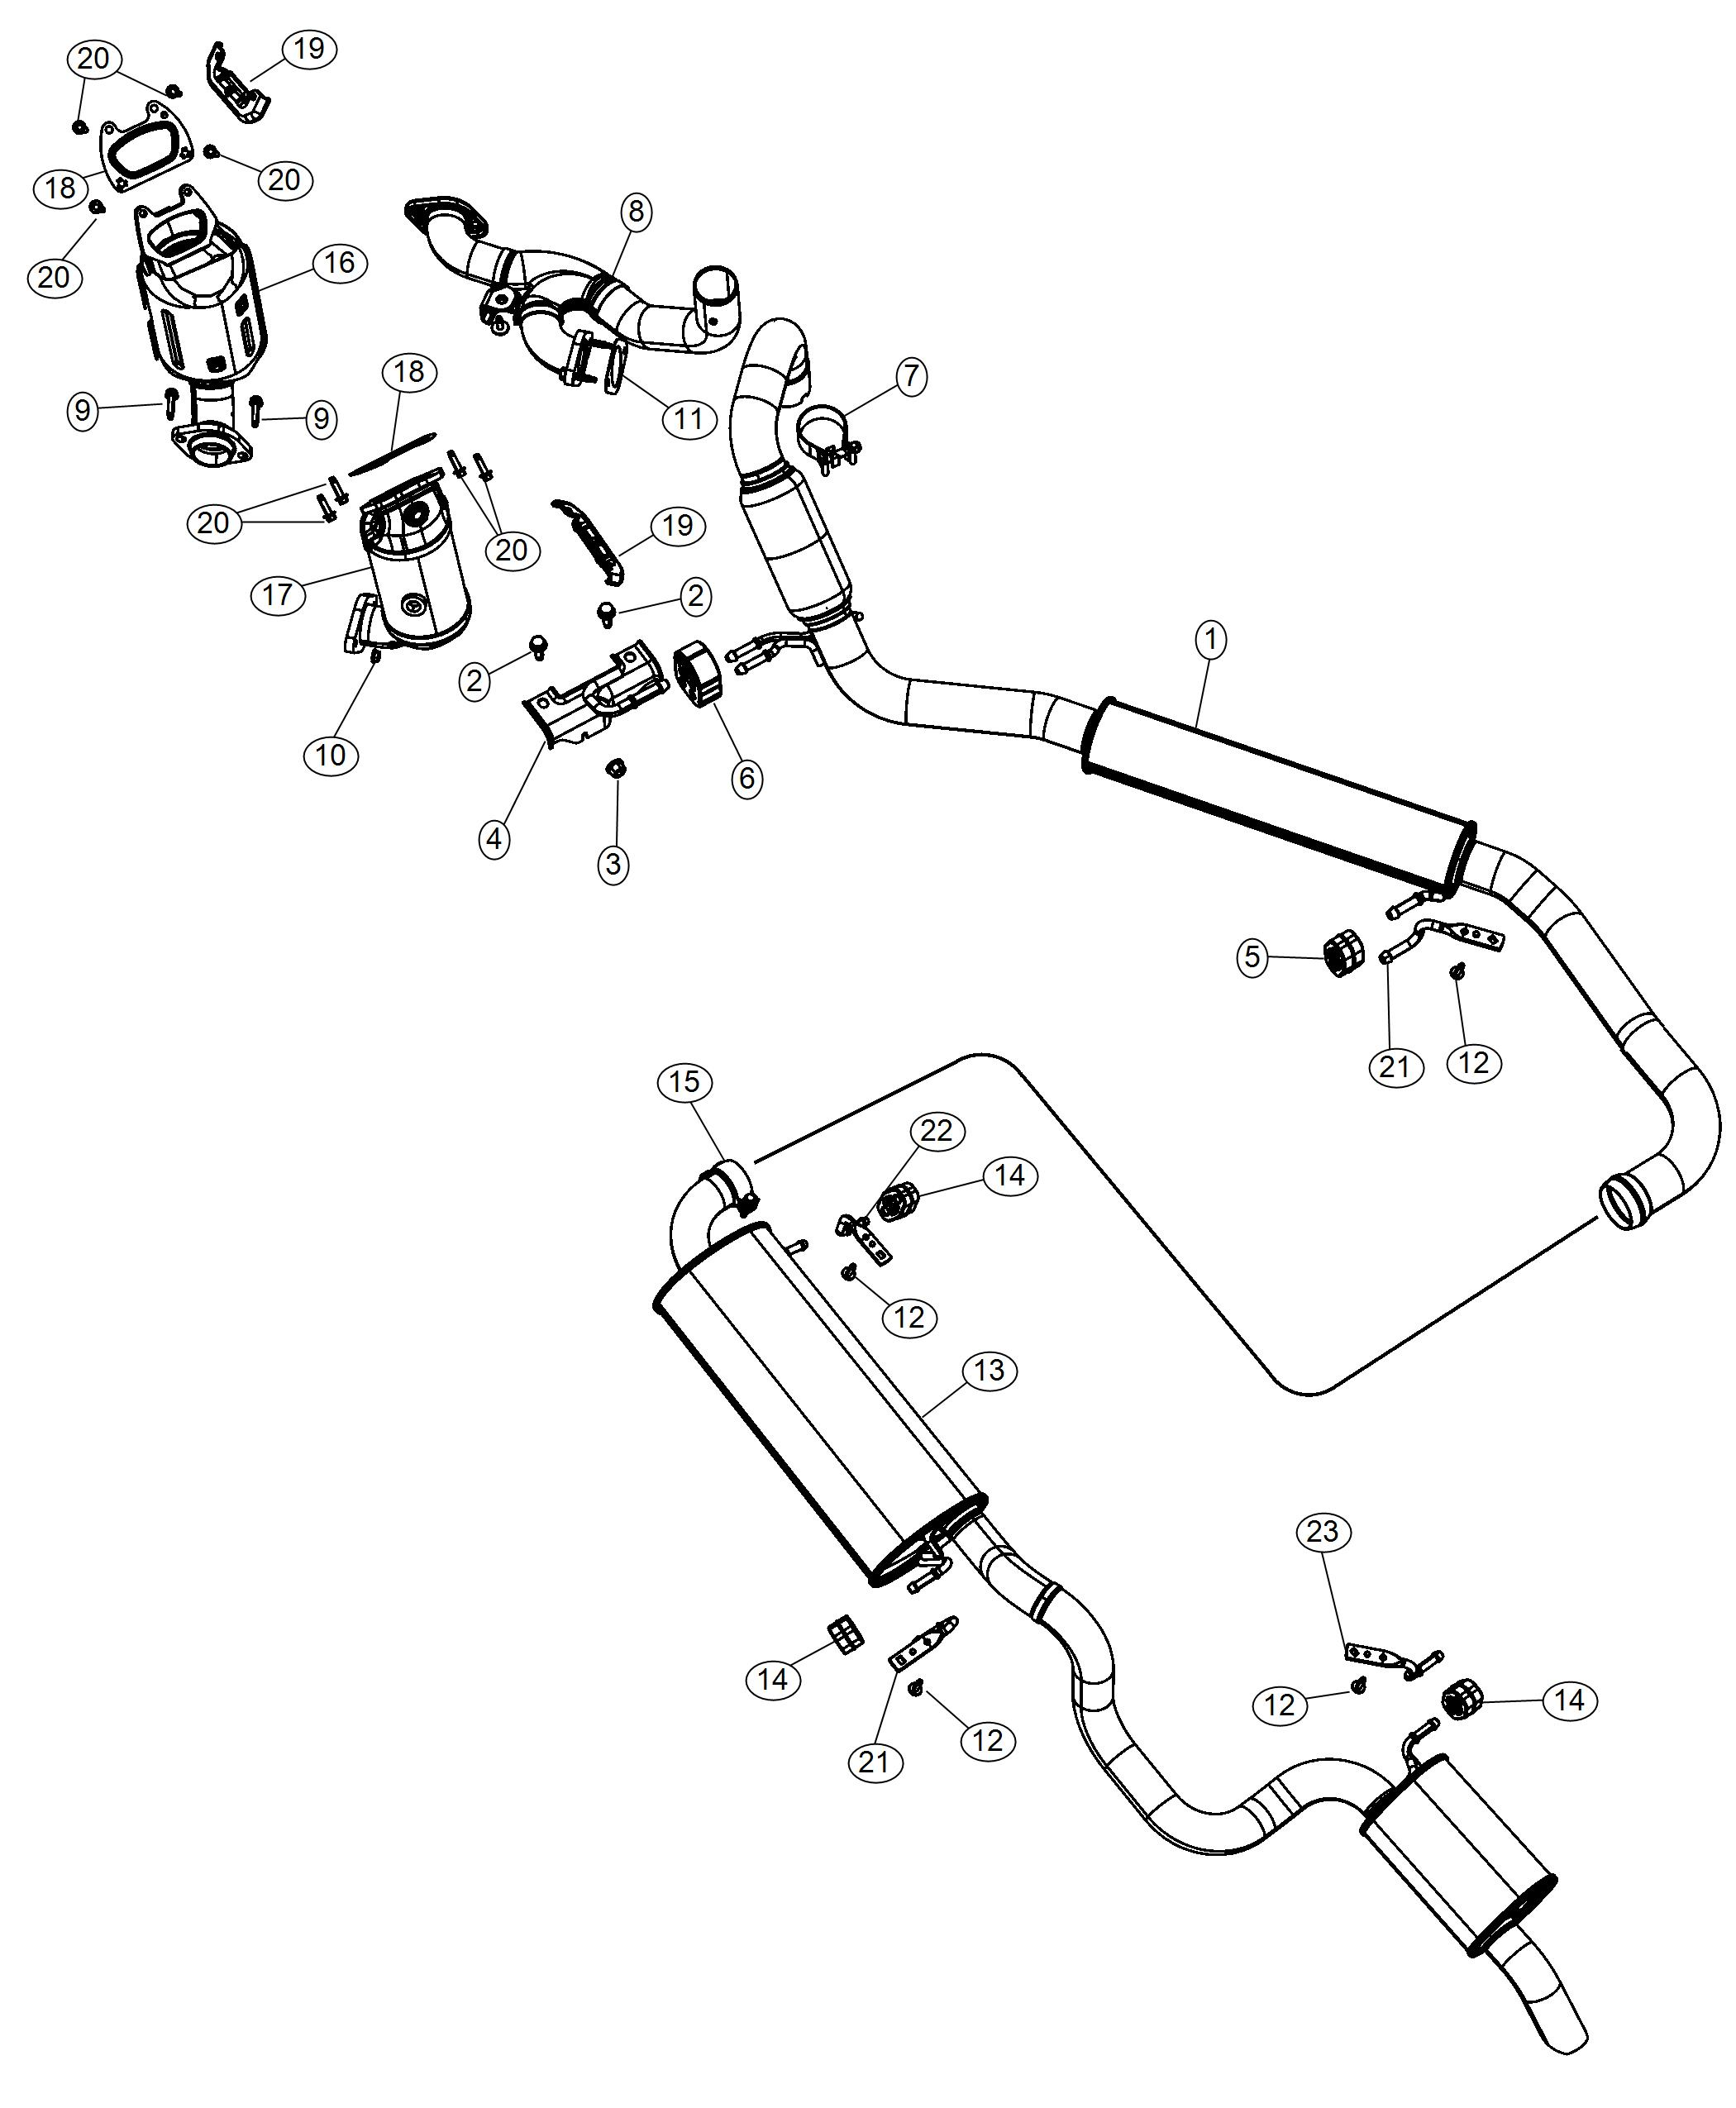 Dodge Grand Caravan Manifold Used For Exhaust And